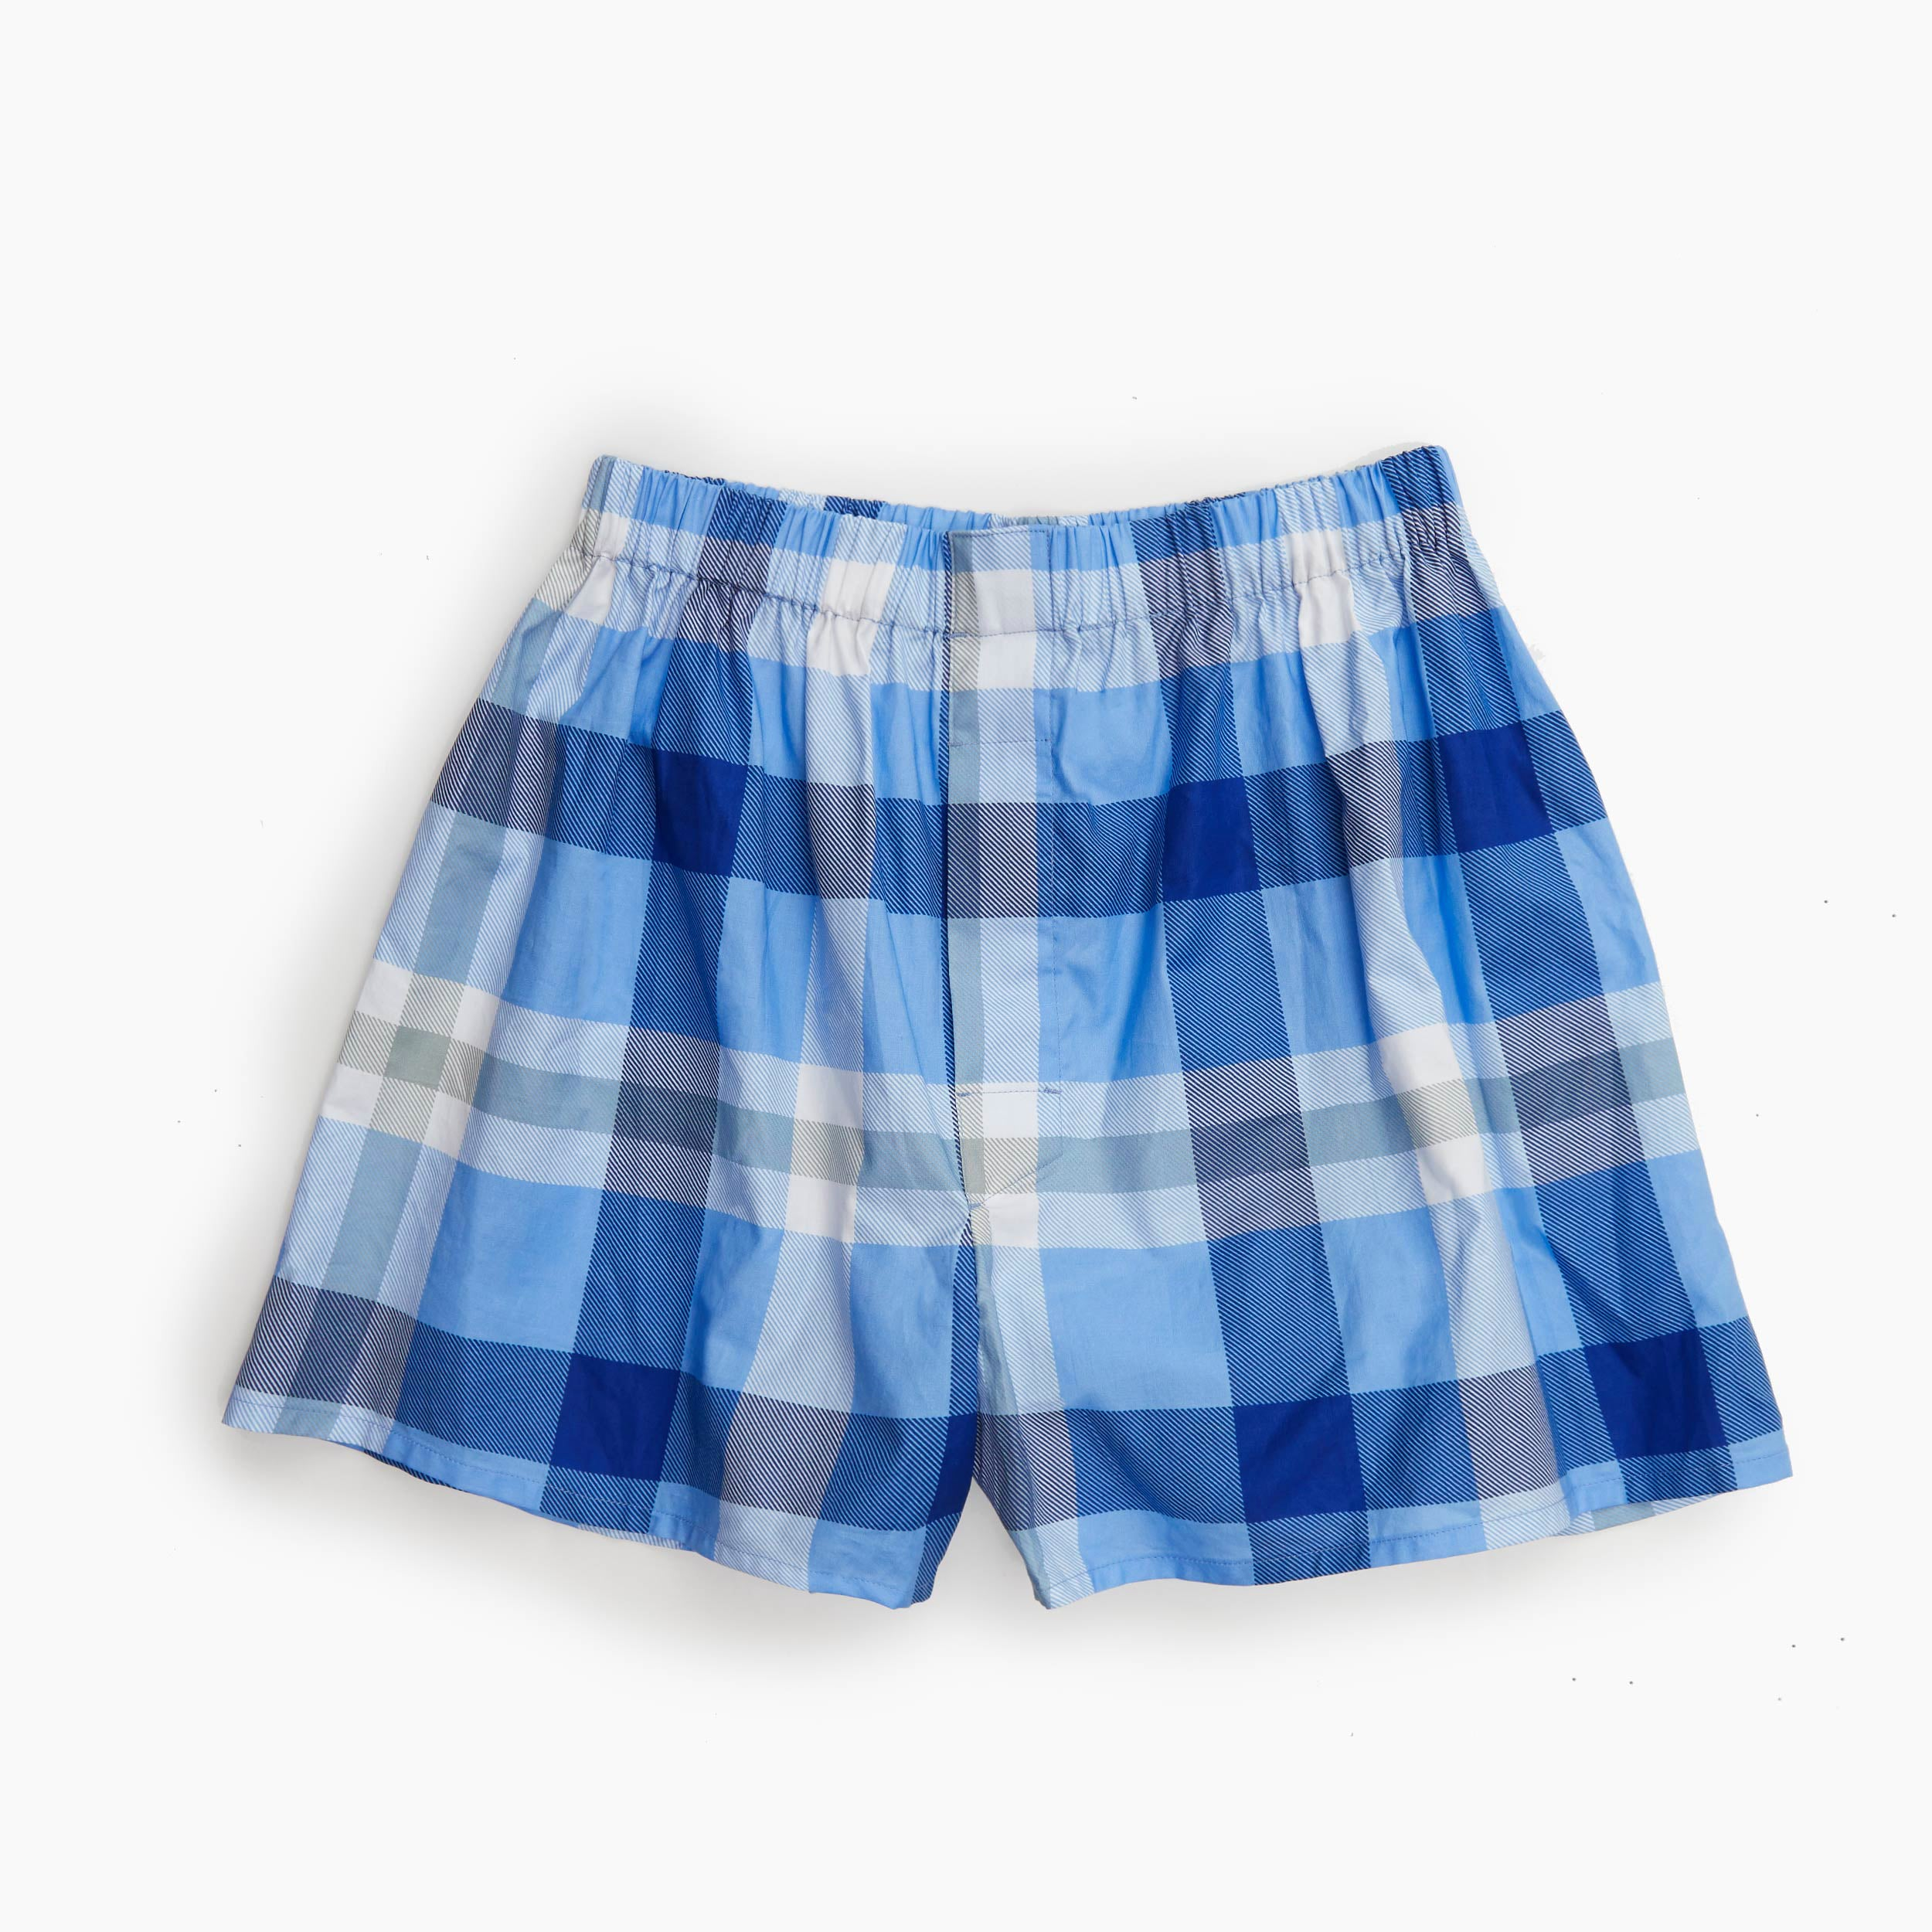 The Tar Heels Plaid Boxer